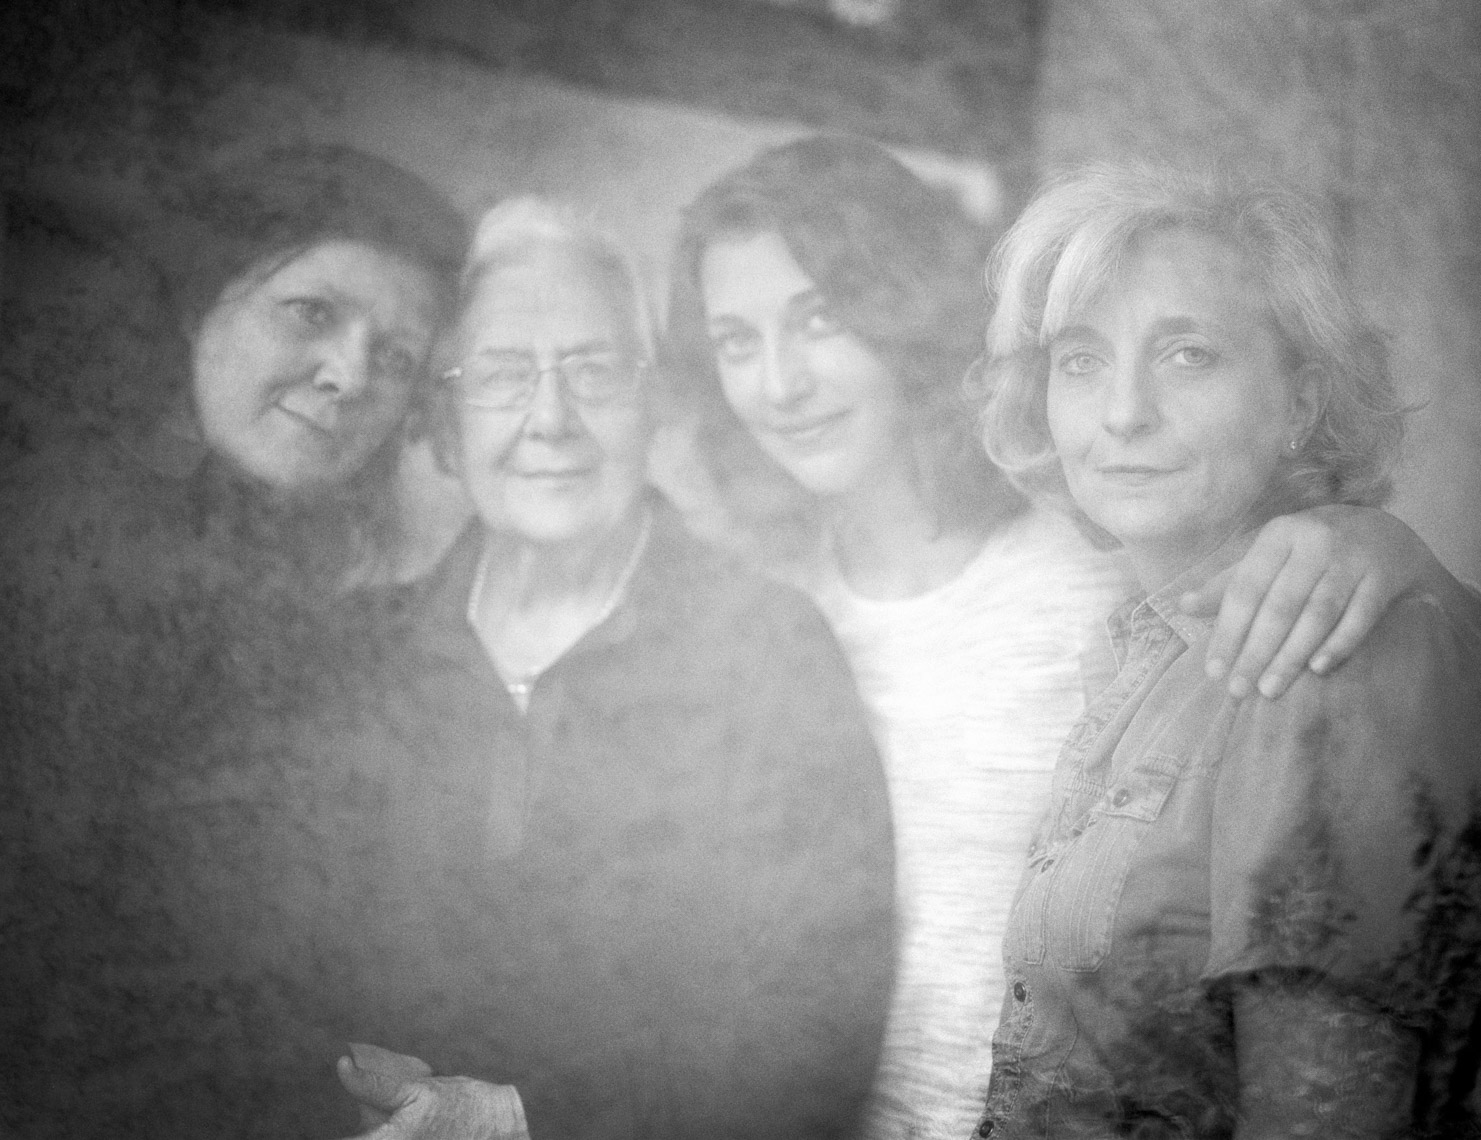 Portrait Of Italian Family | Tosca Radigonda Photography